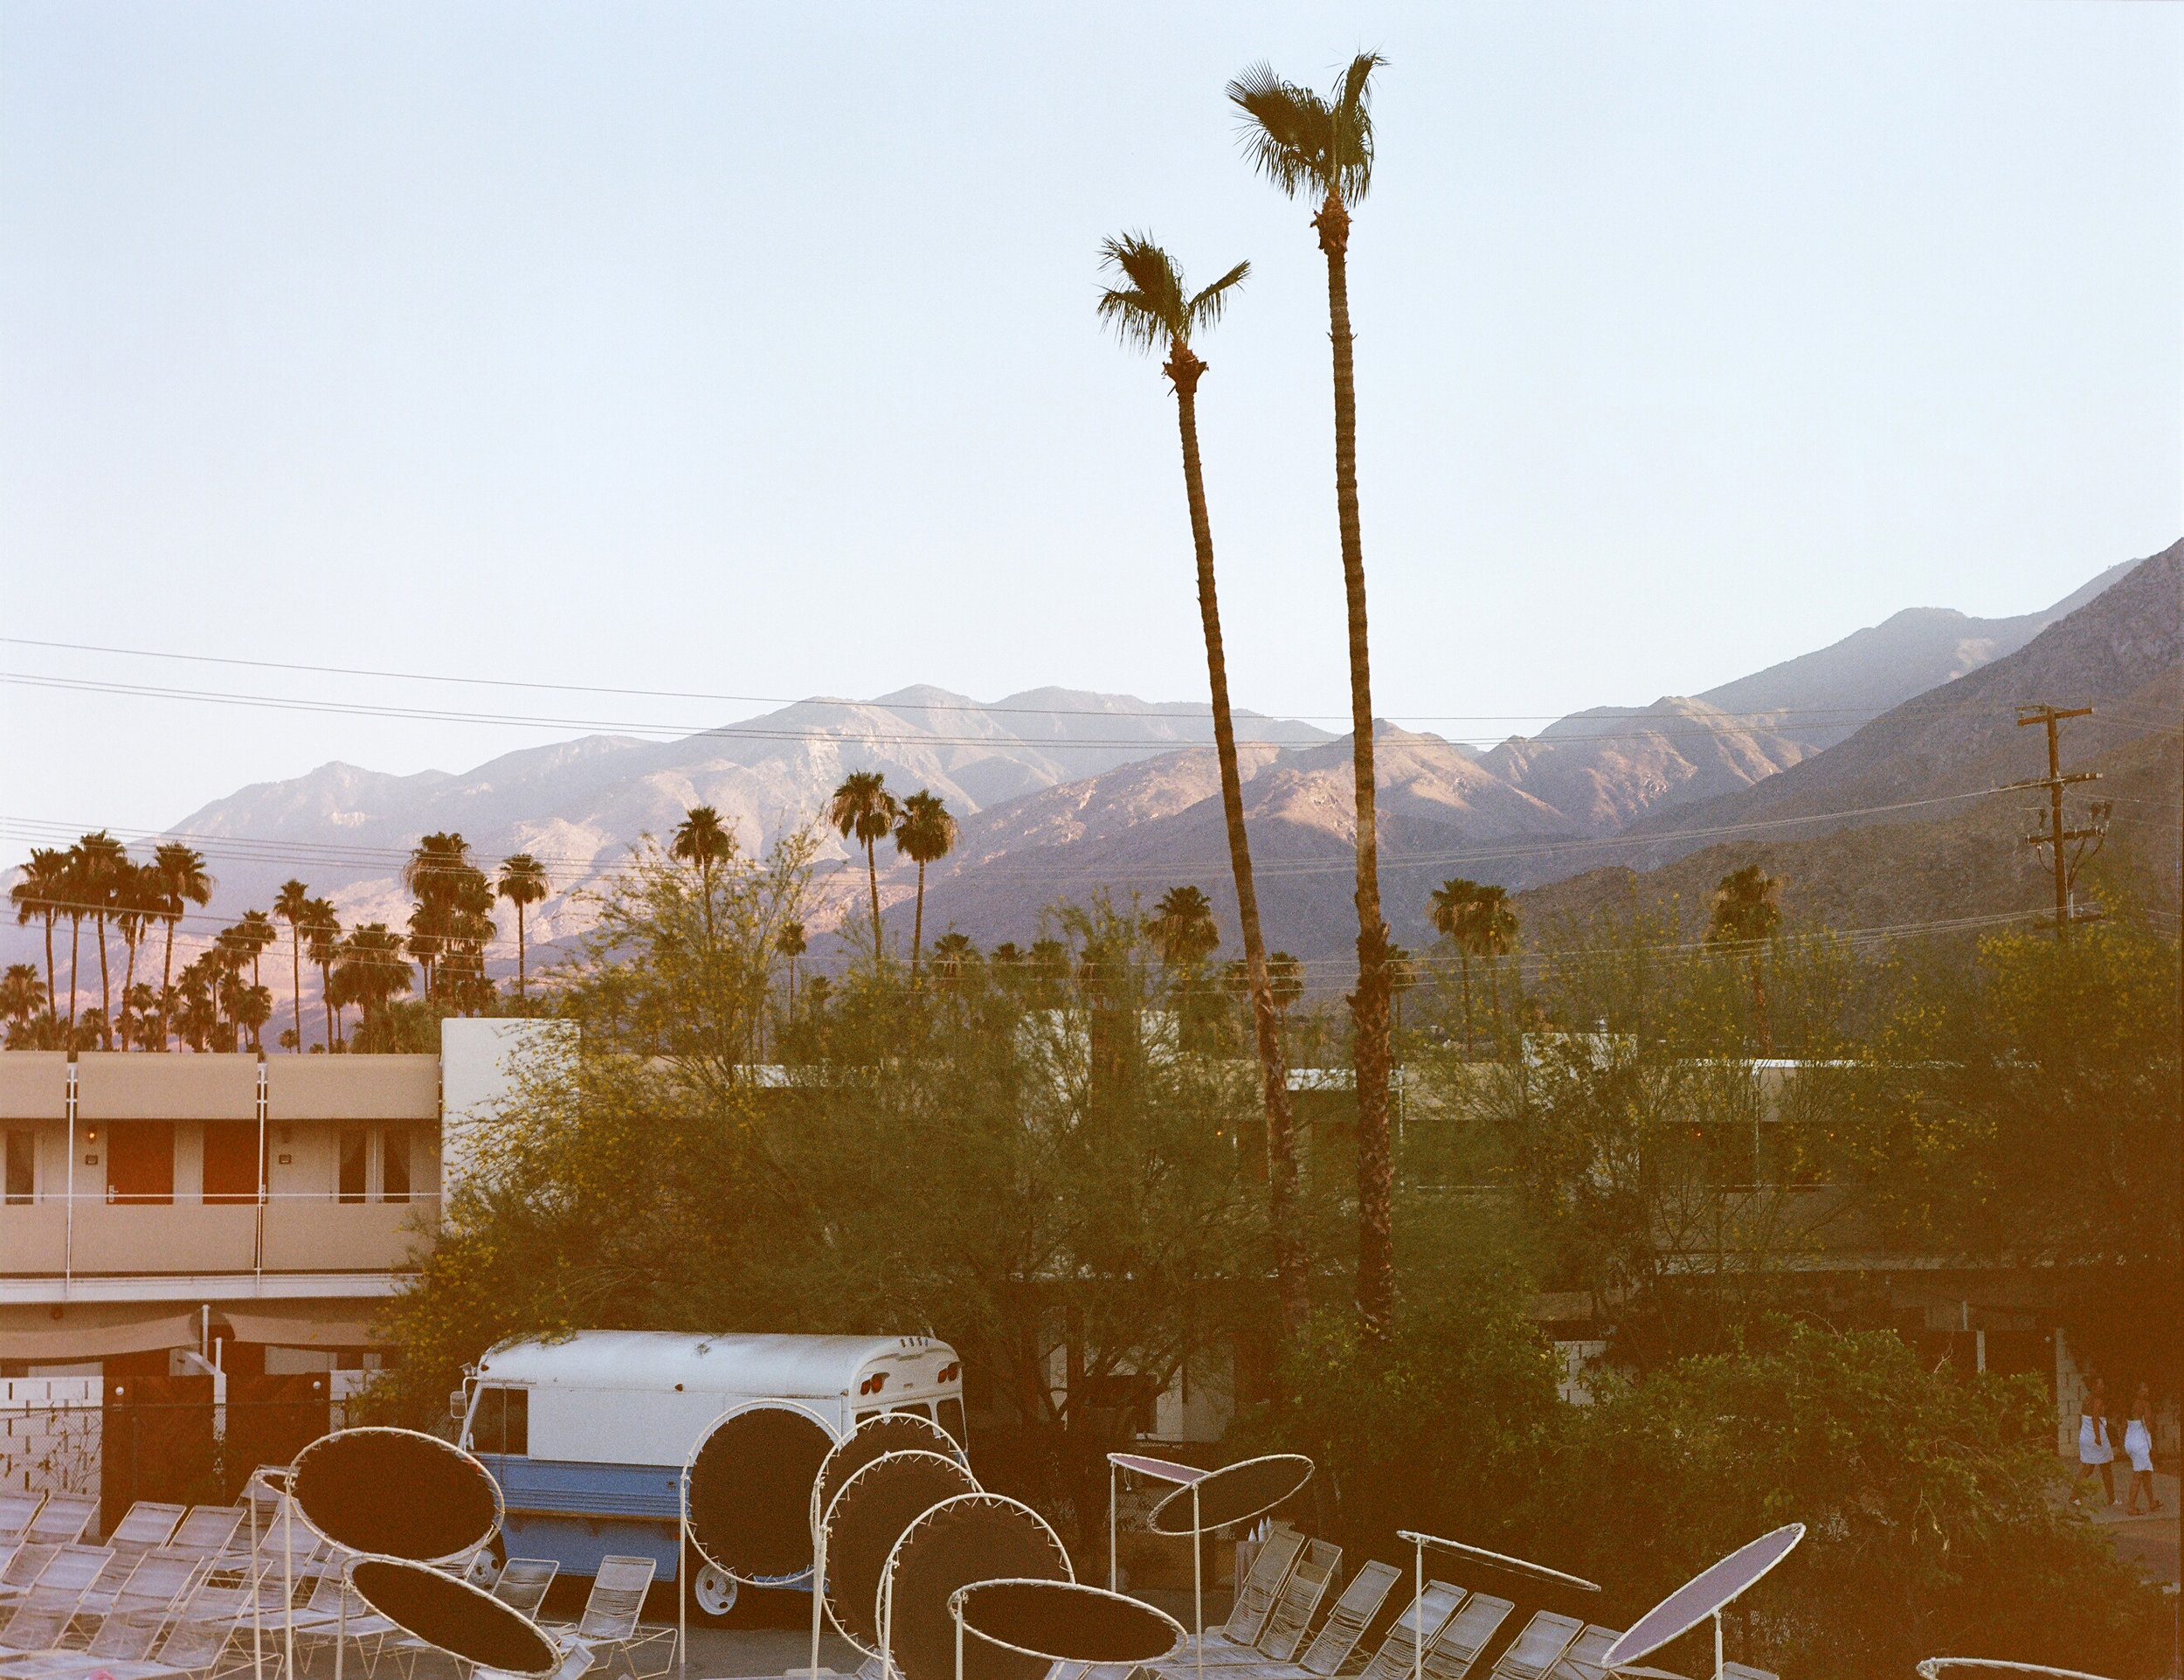 PALM SPRINGS - Hazy daze at ACE Hotel